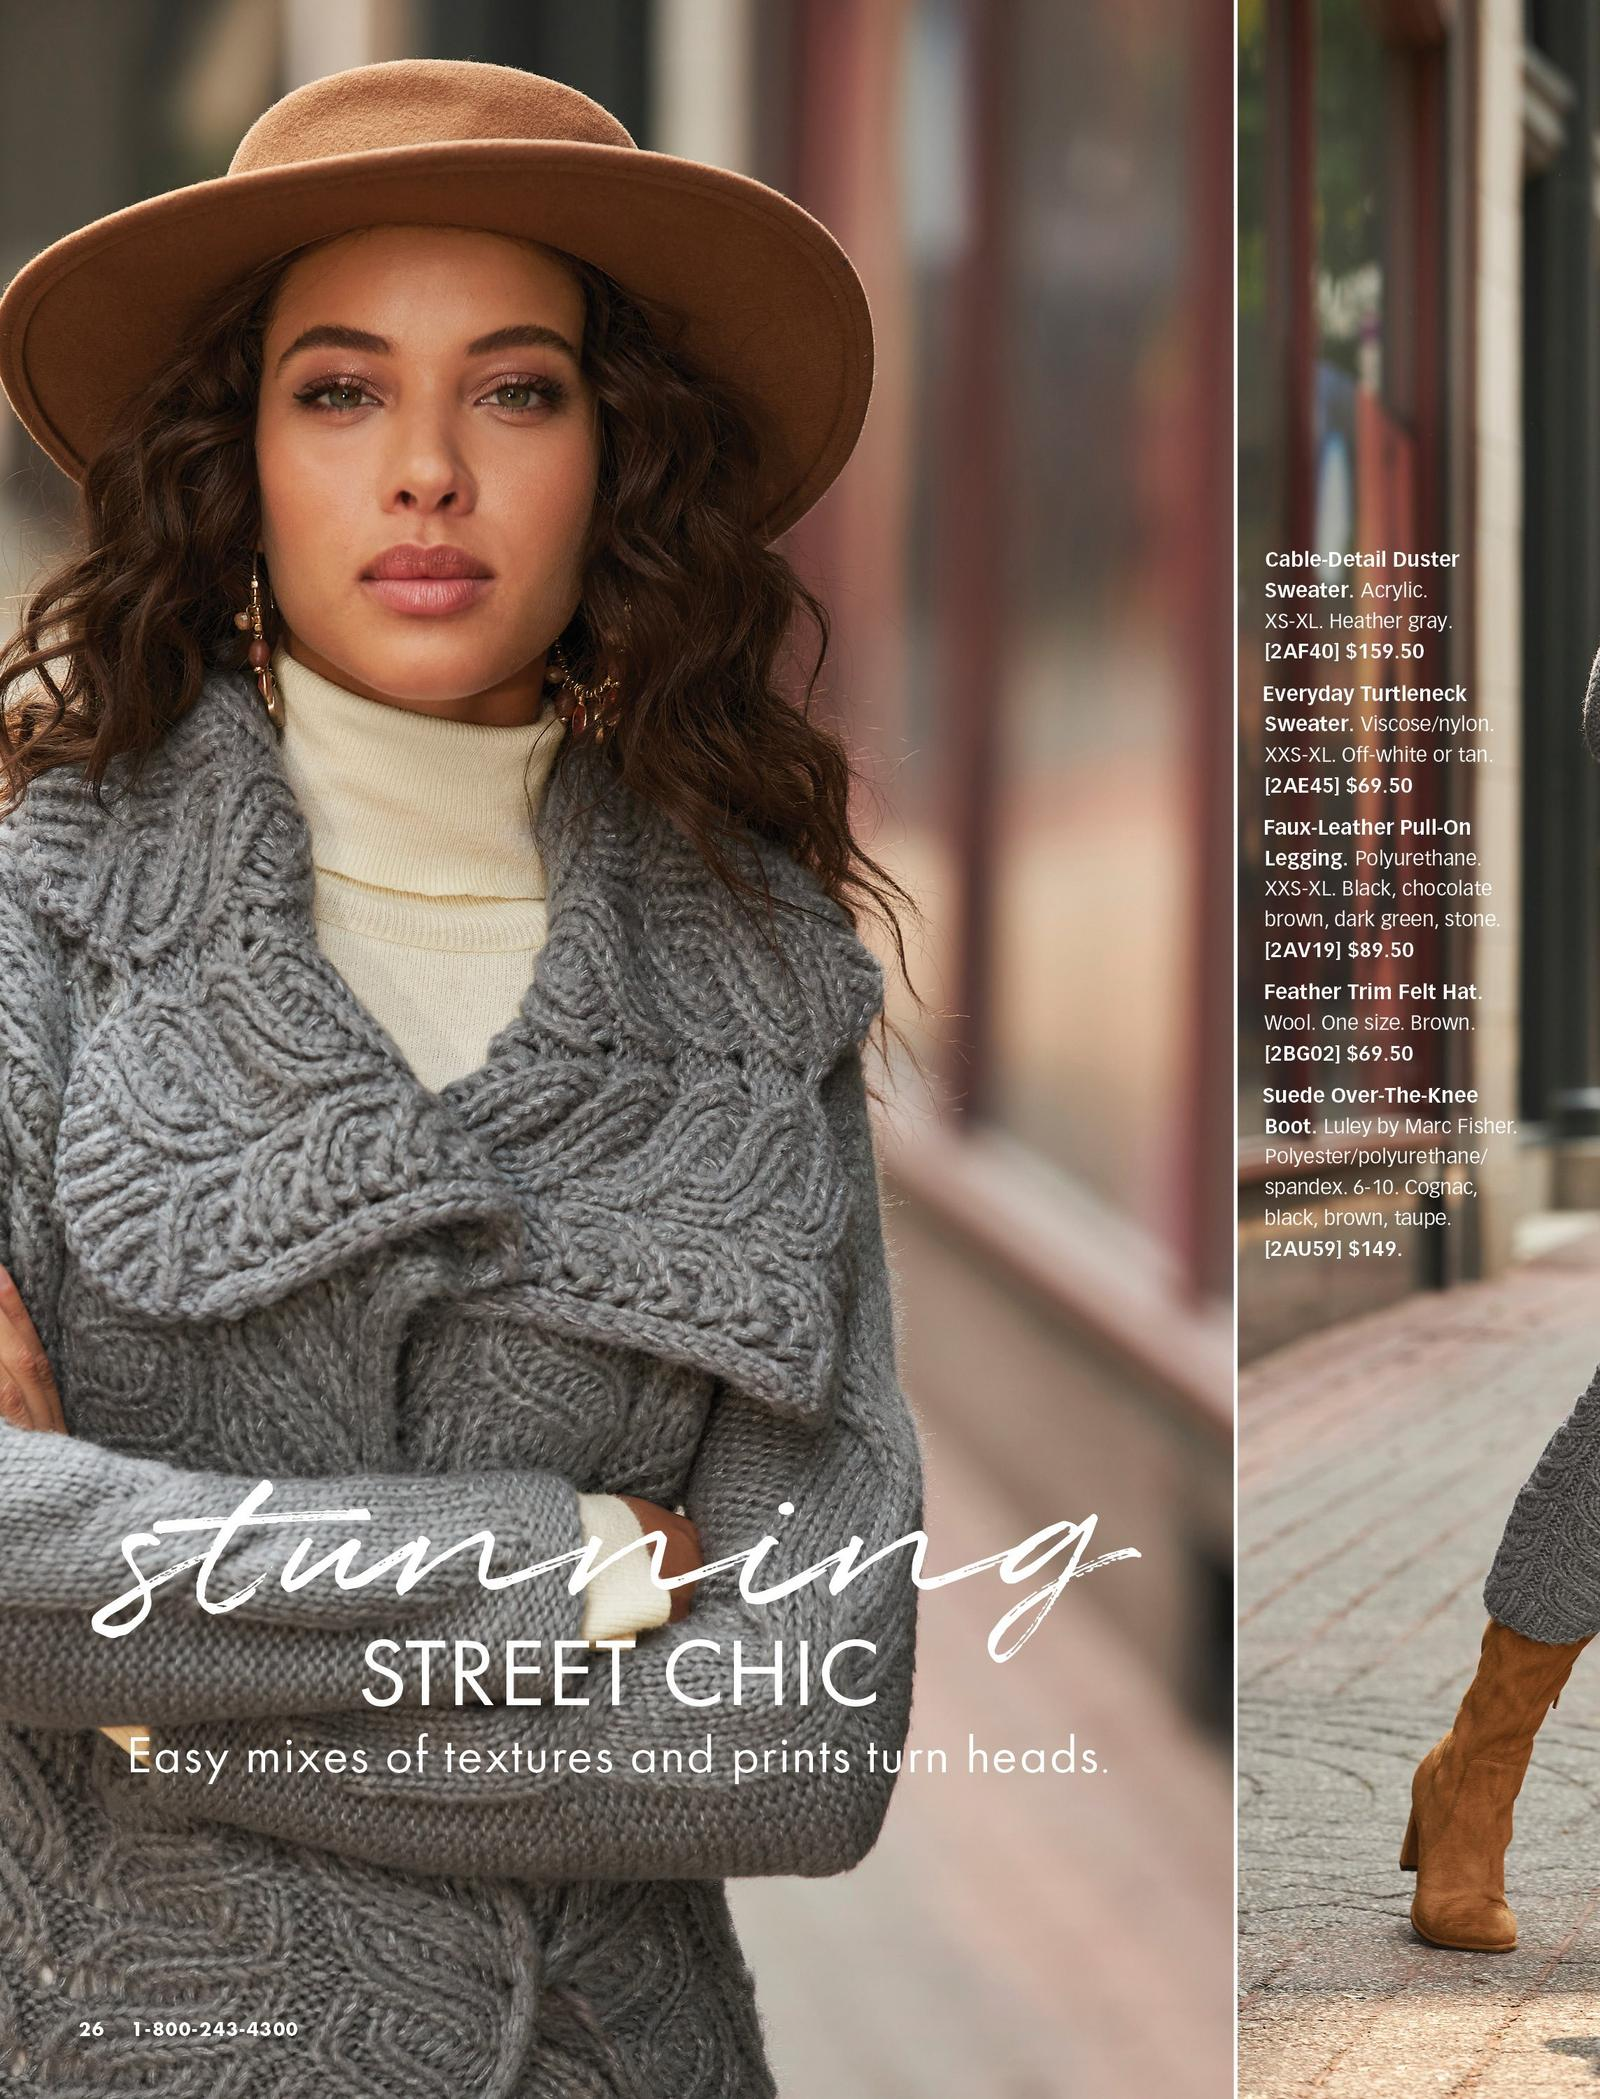 model wearing a gray cable-detail long duster sweater, off-white turtleneck sweater, and brown felt hat.